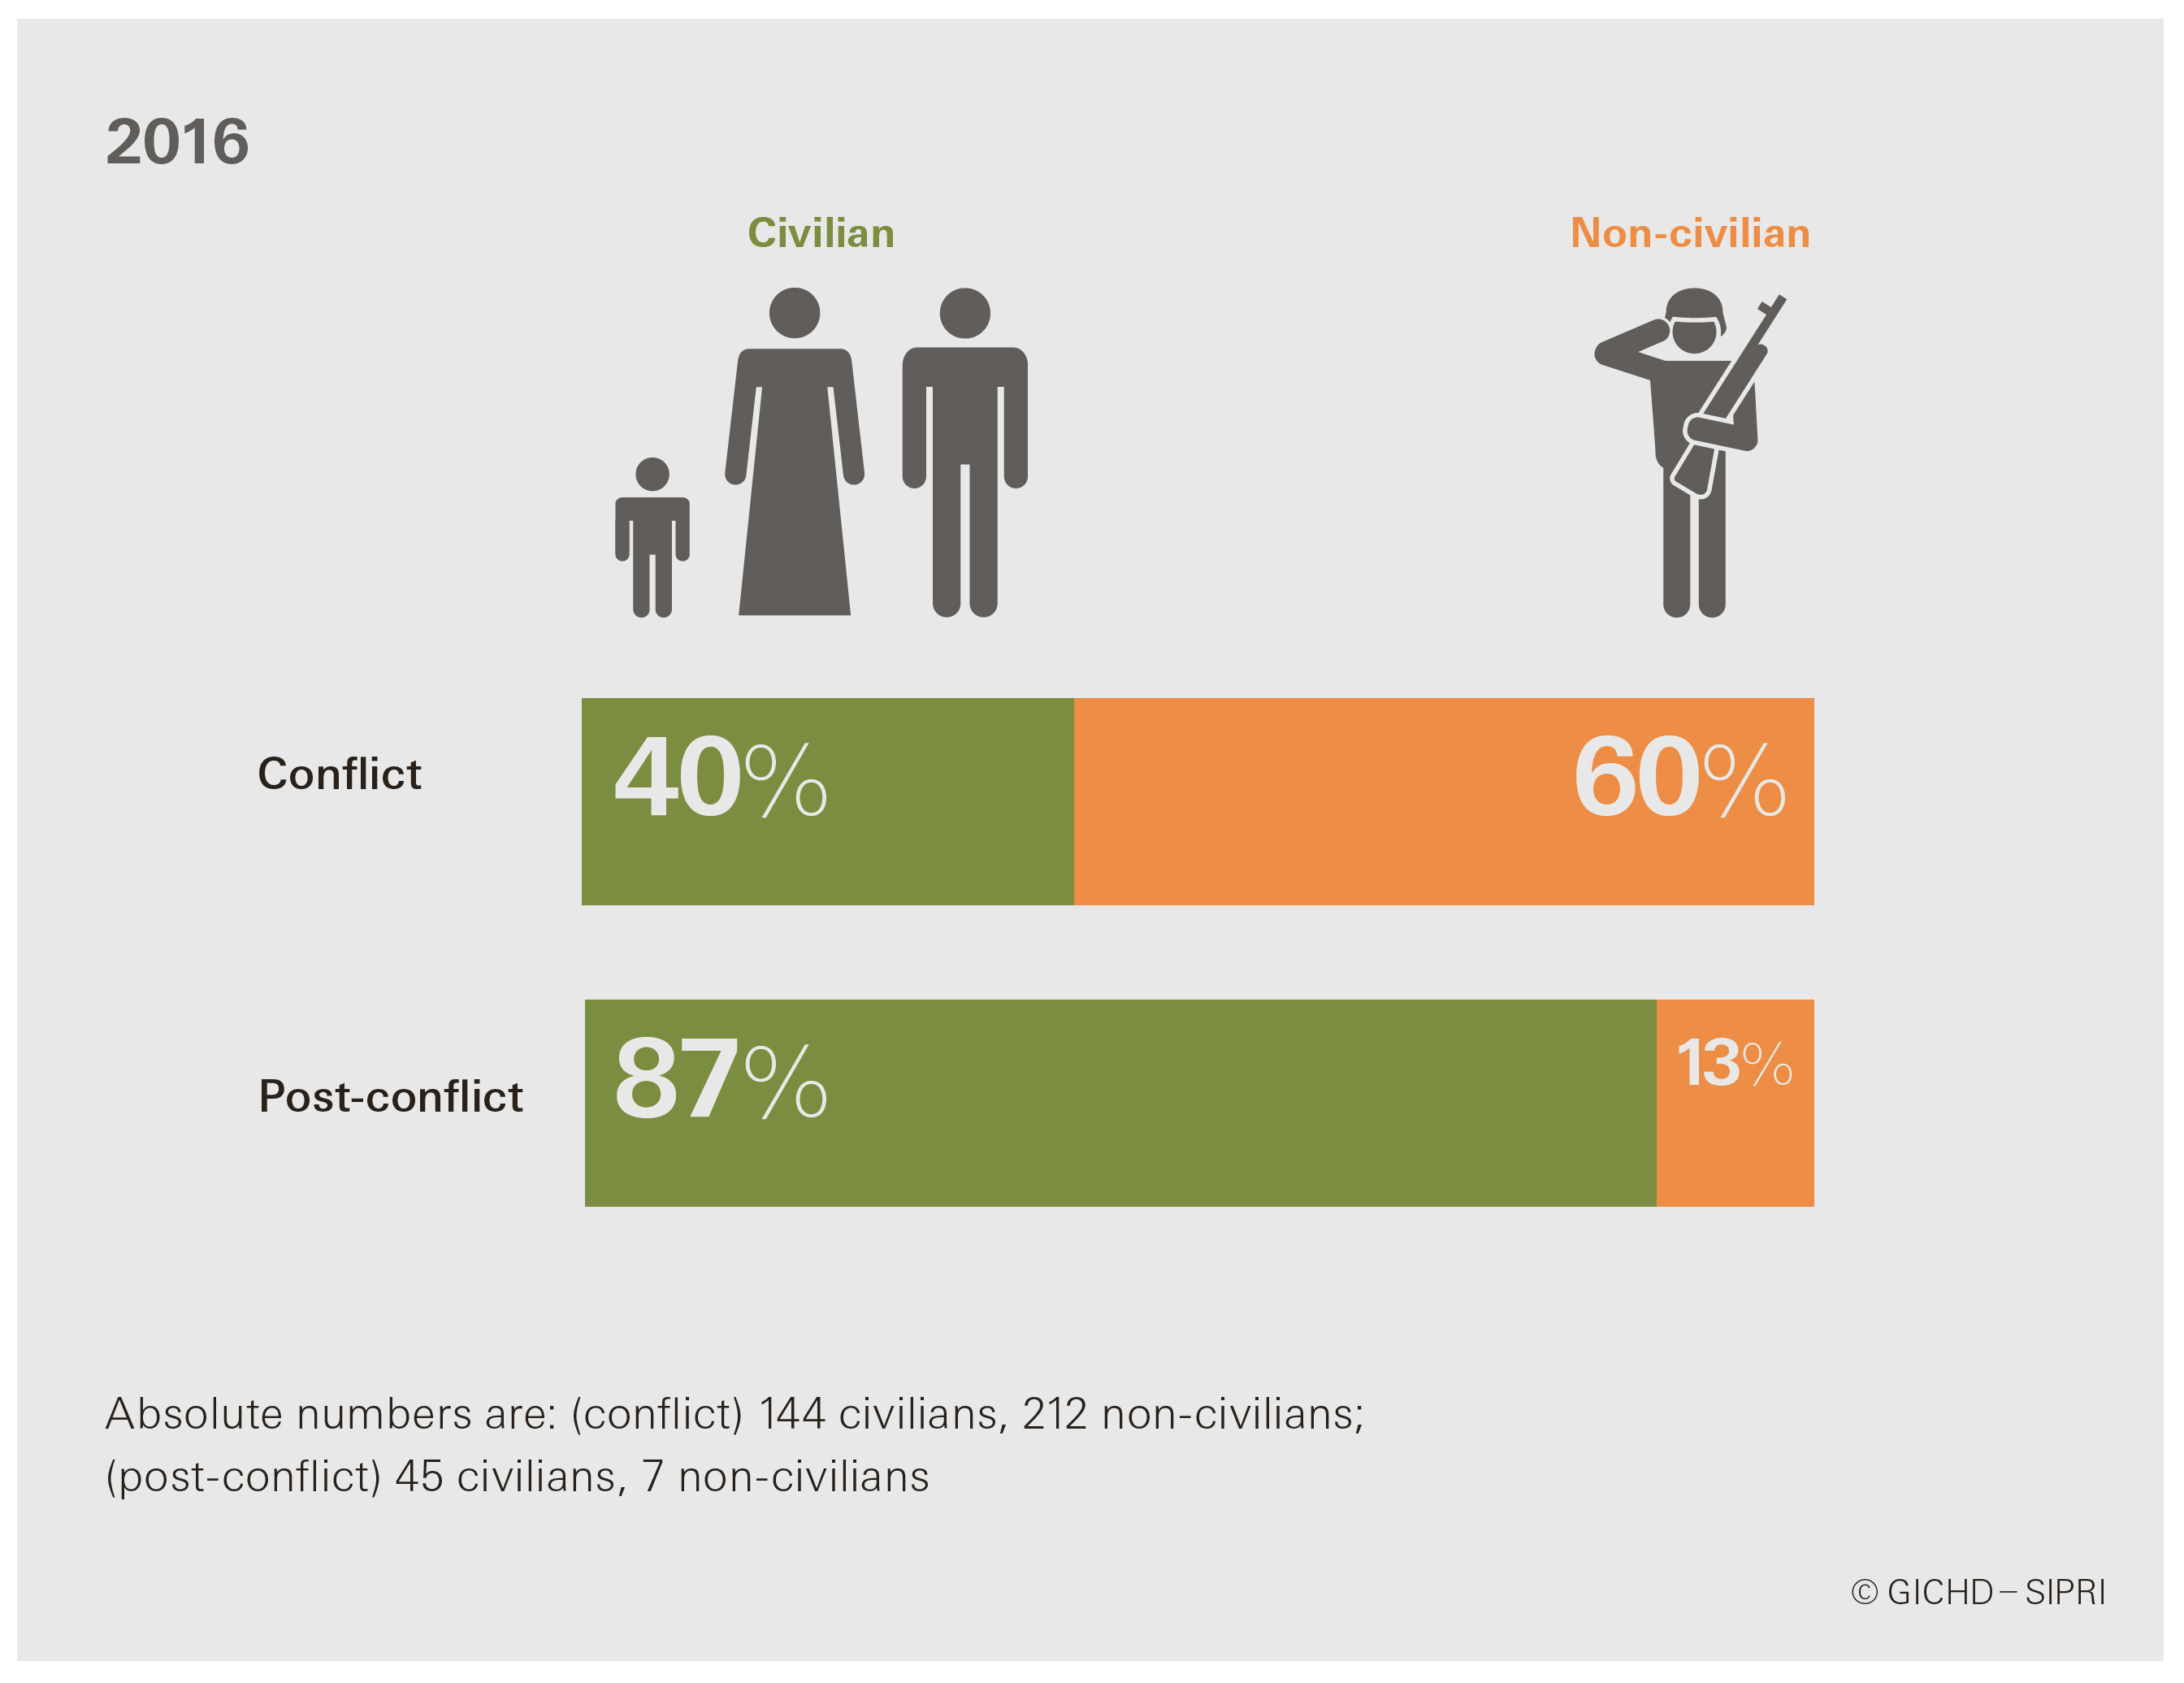 Figure 2: Casualty demographics in conflict vs post-conflict settings in 2016. Infographic: GICHD–SIPRI.